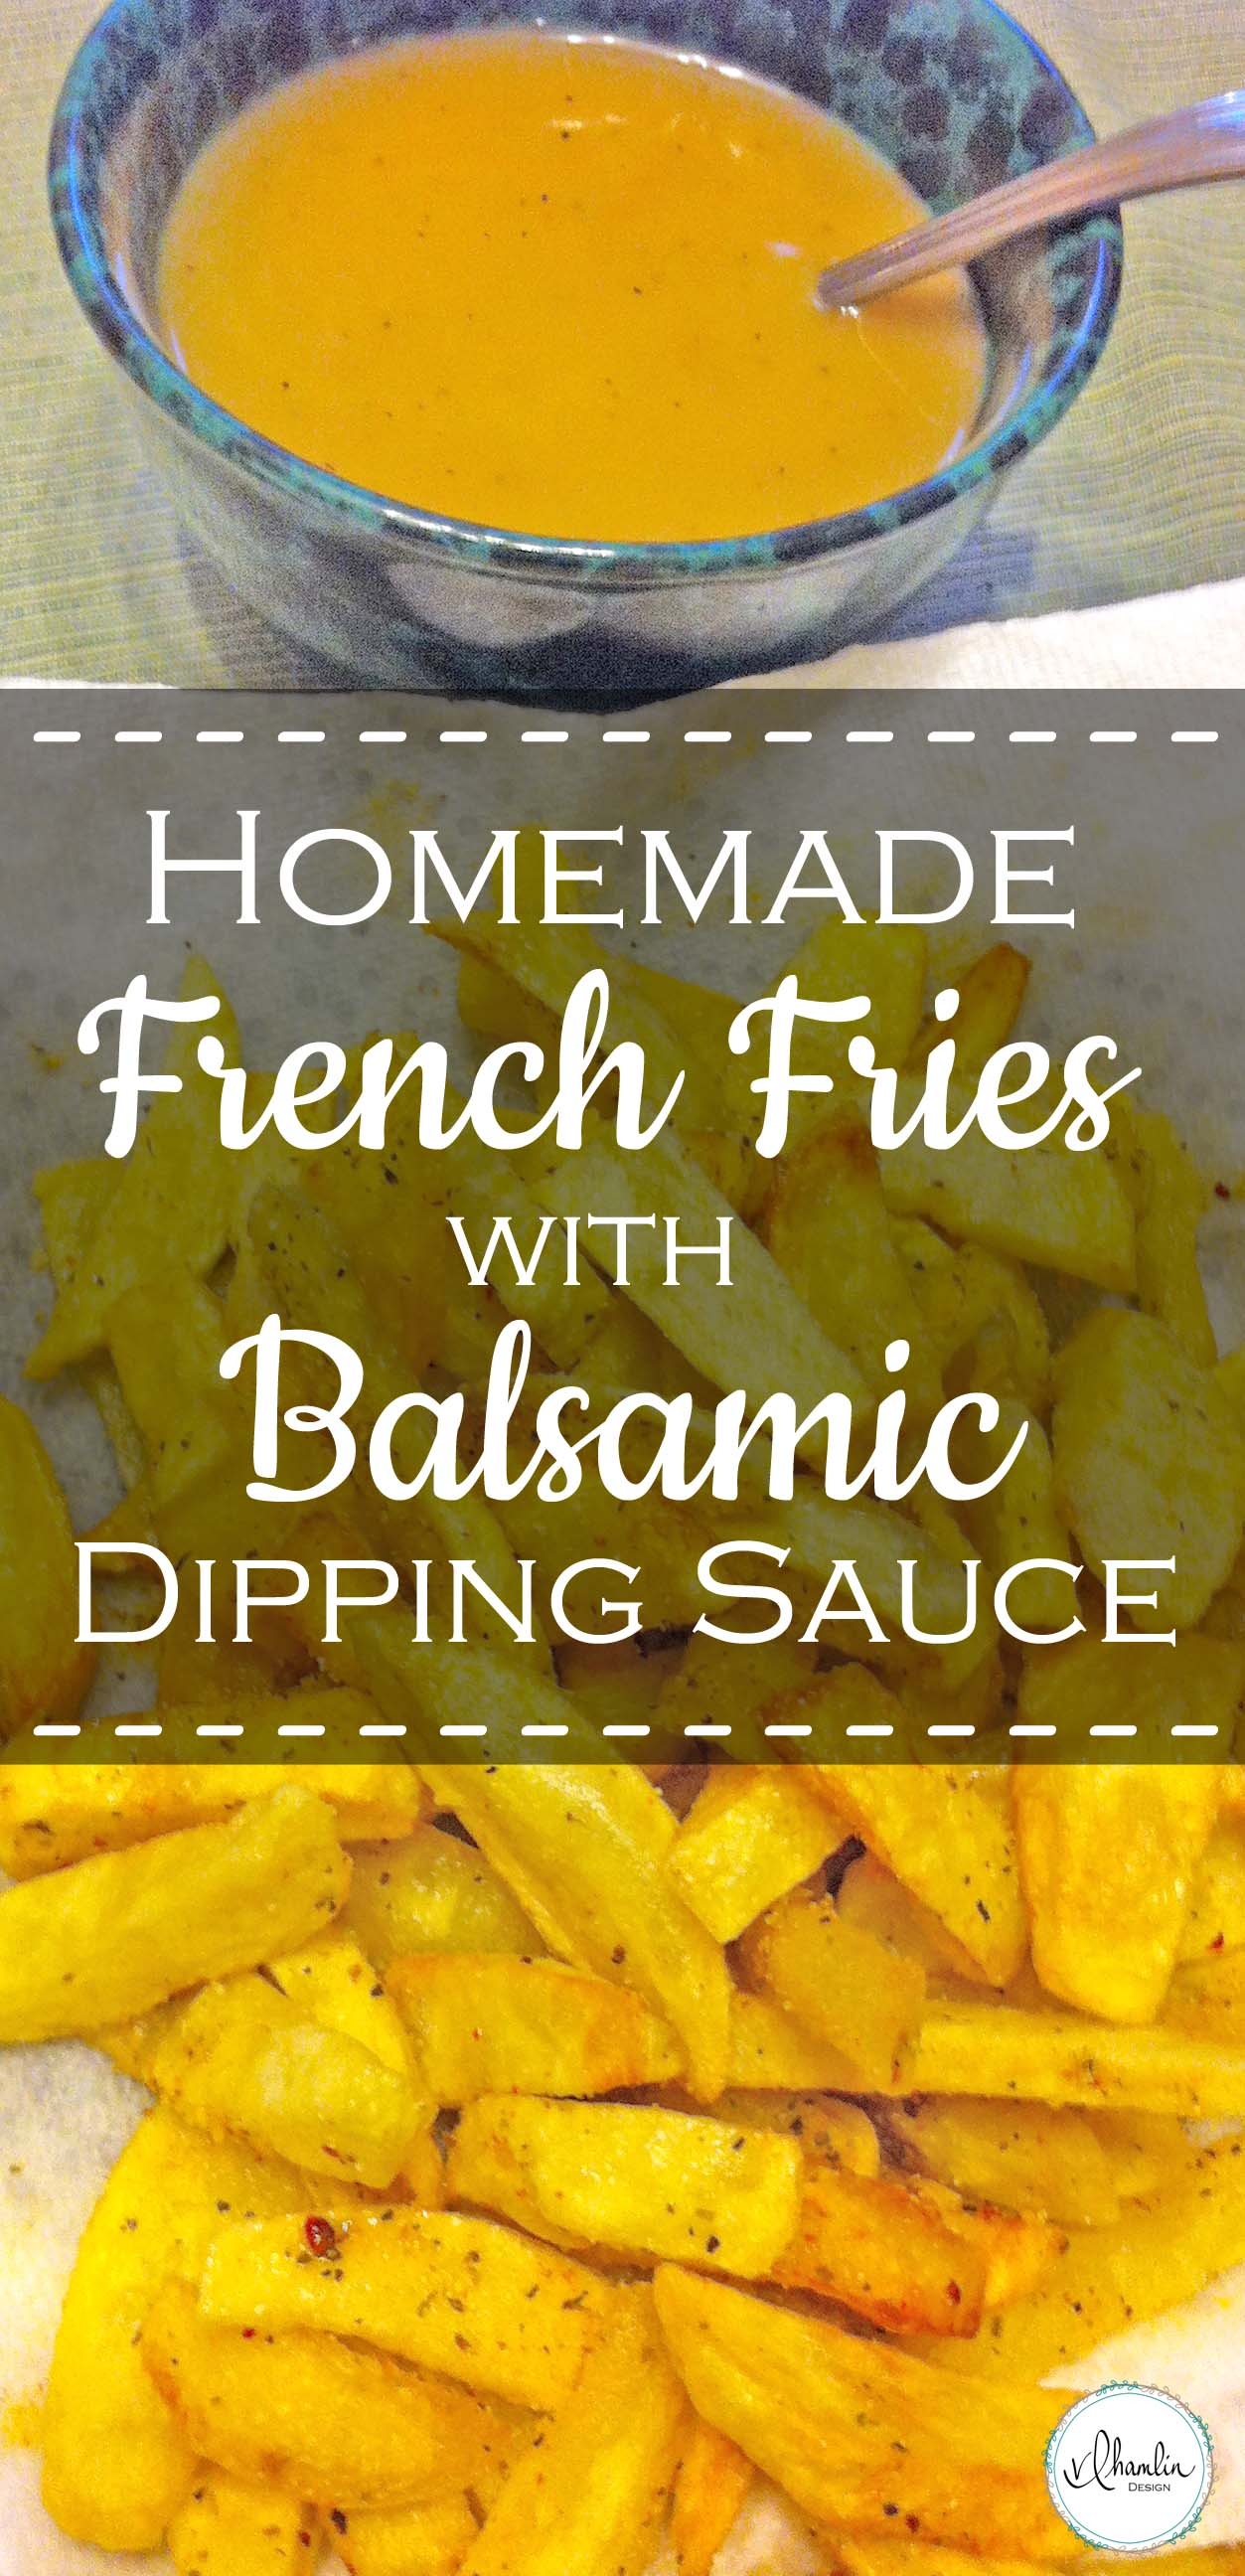 National French Fries Day - Homemade French Fries with Balsamic Dipping Sauce